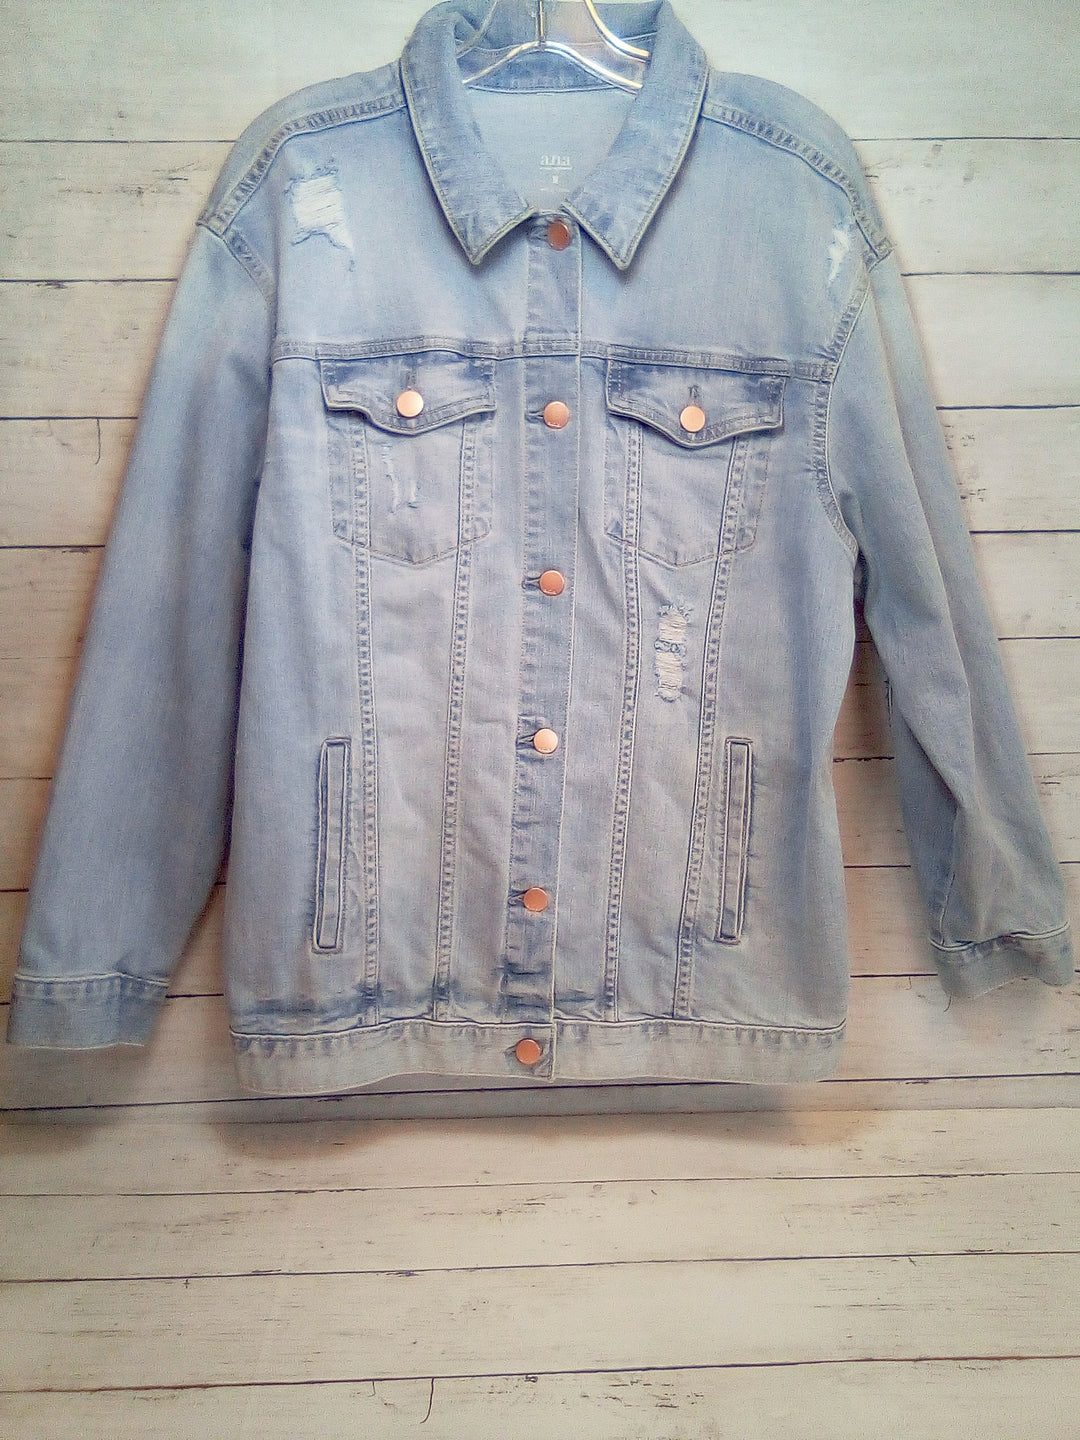 Primary Photo - BRAND: ANA <BR>STYLE: BLAZER JACKET <BR>COLOR: DENIM BLUE <BR>SIZE: M <BR>SKU: 216-21638-65832